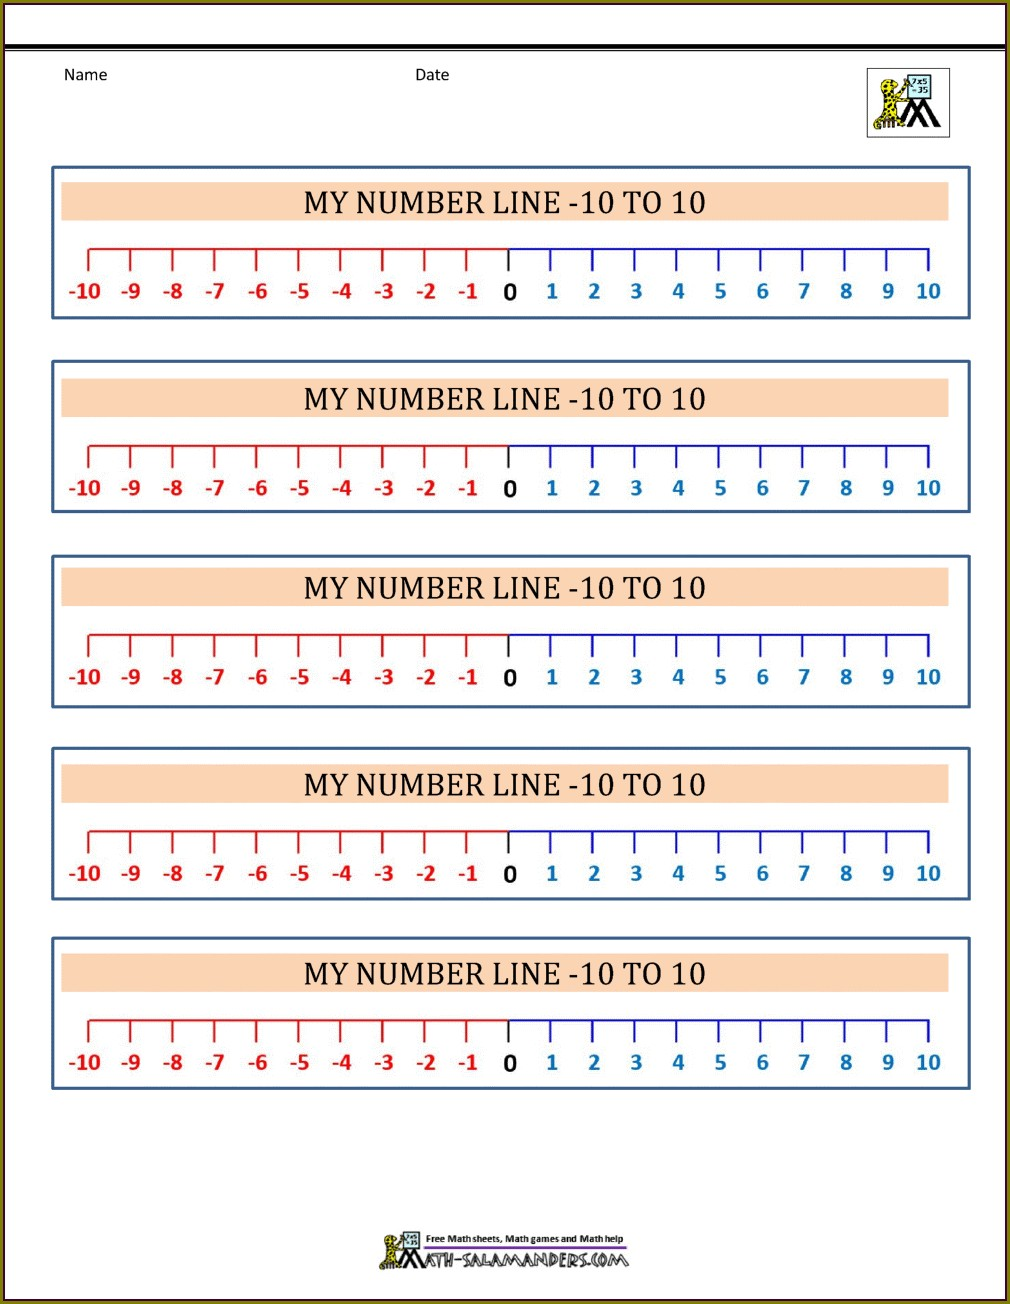 Number Line With Negative Numbers For Display